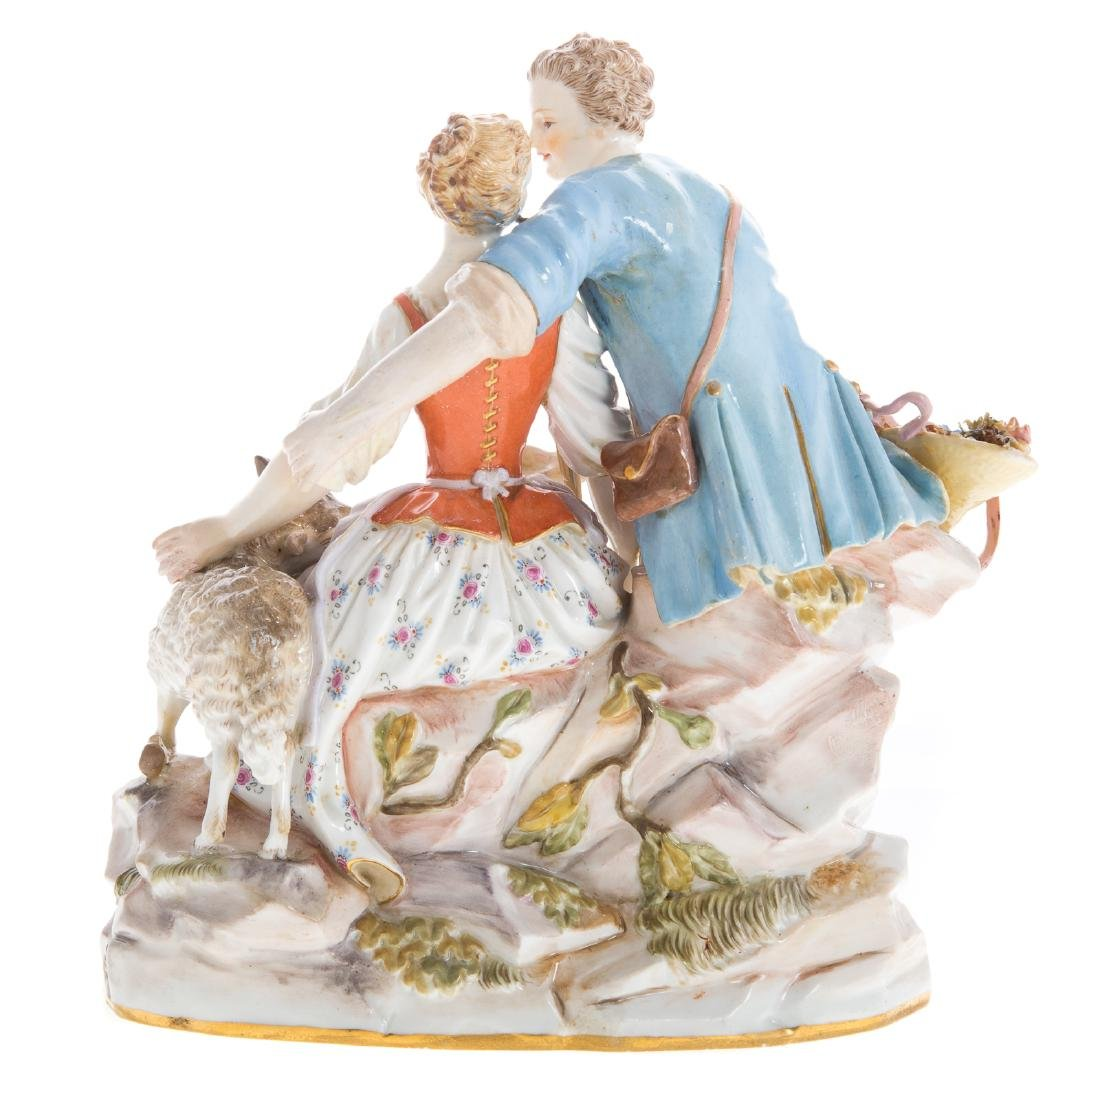 Meissen porcelain pastoral figure group - 3